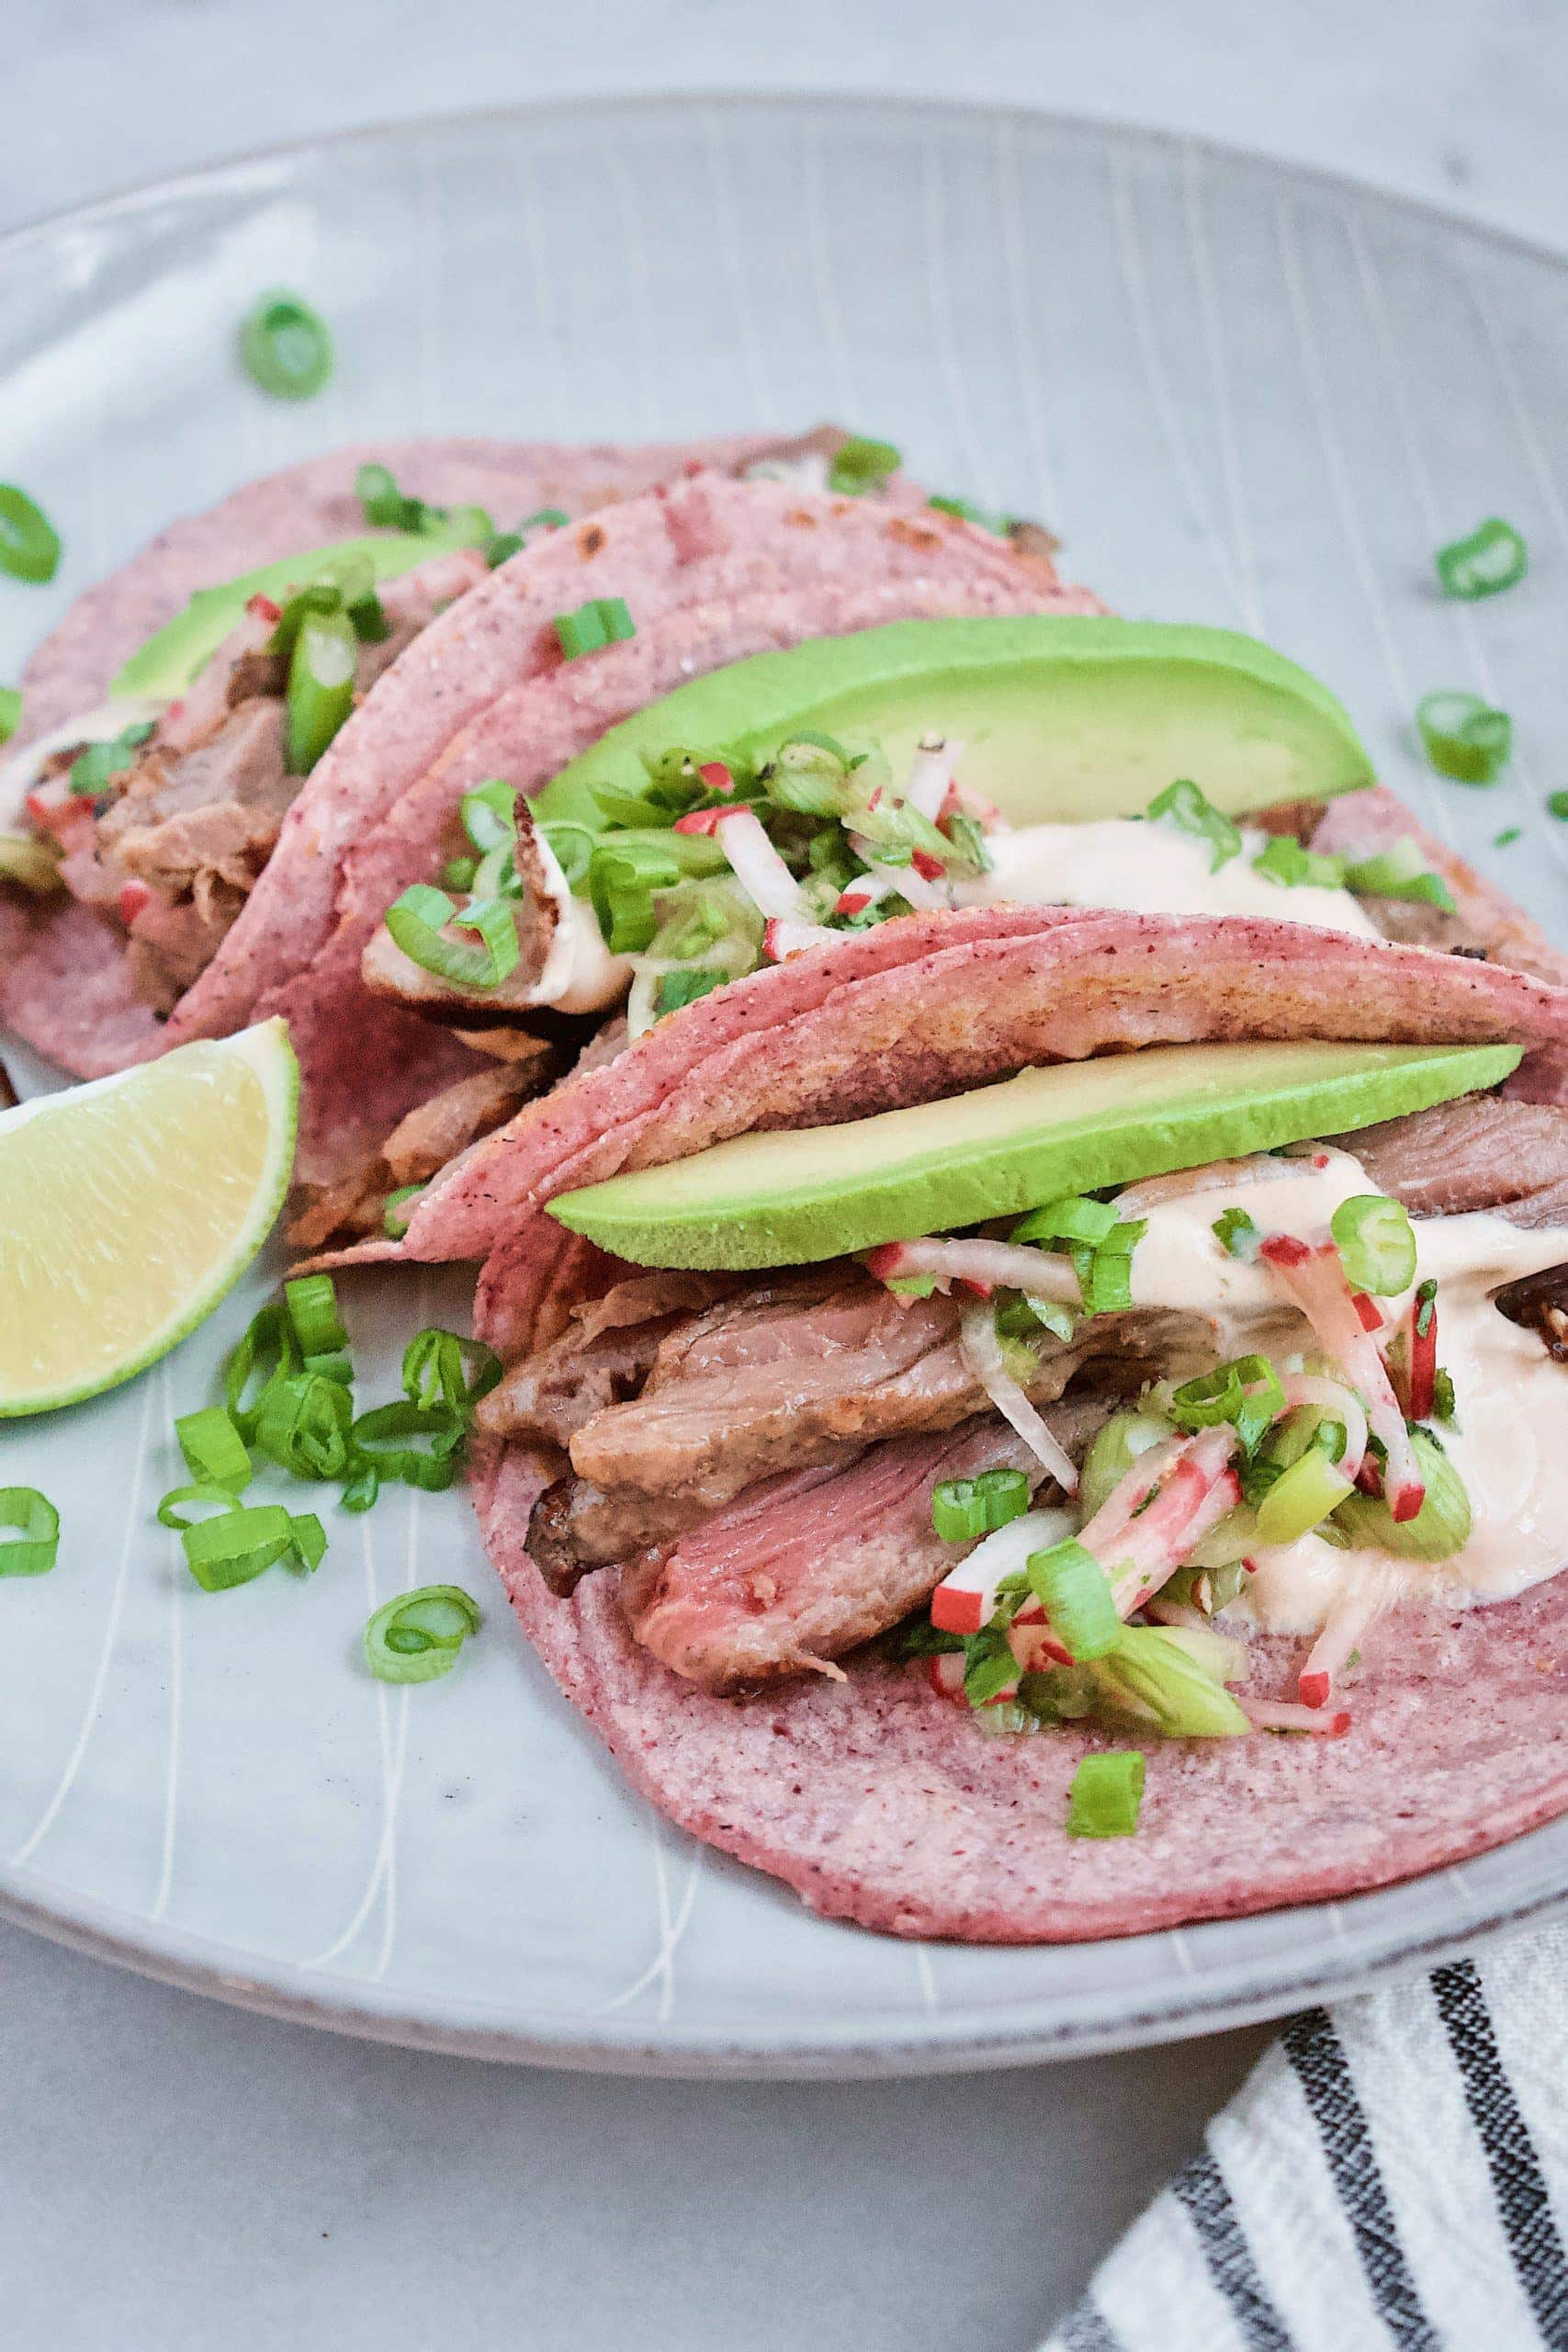 Joanna Gaines Steak Tacos with homemade corn tortillas